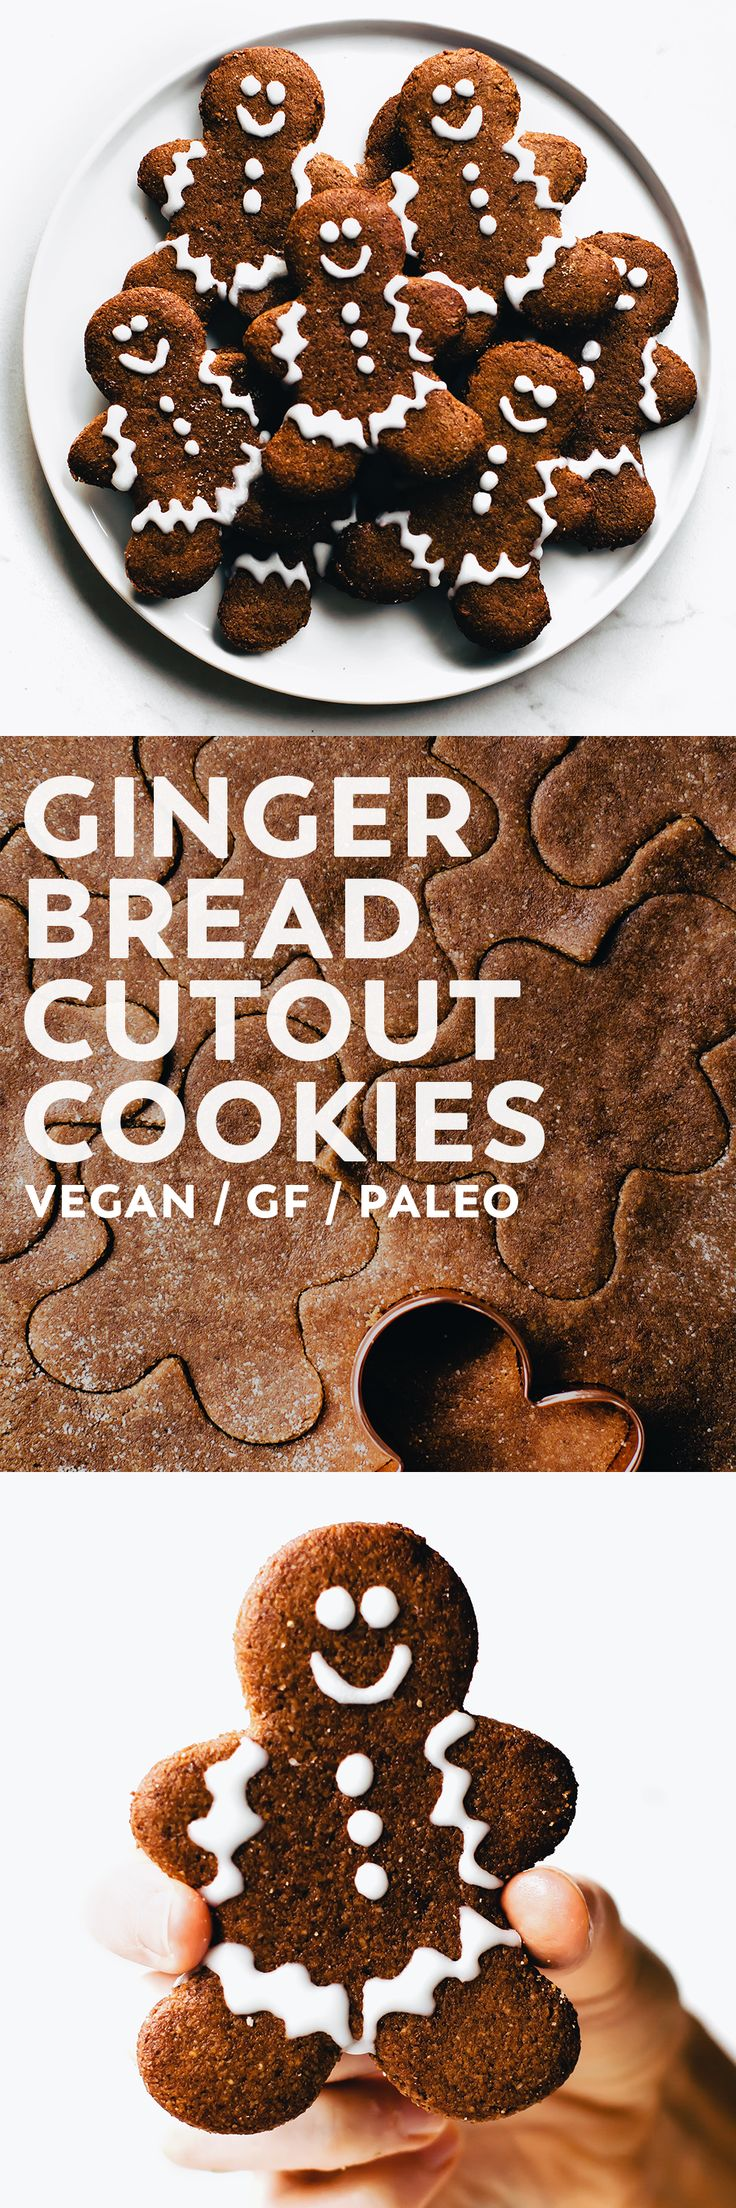 Soft and tender, crispy edges, warm spices, just sweet enough – these Gingerbread Cutout Cookies are everything a FAVORITE Christmas cookie should be! #vegan #glutenfree #paleo #christmas #cookies #dessert #baking